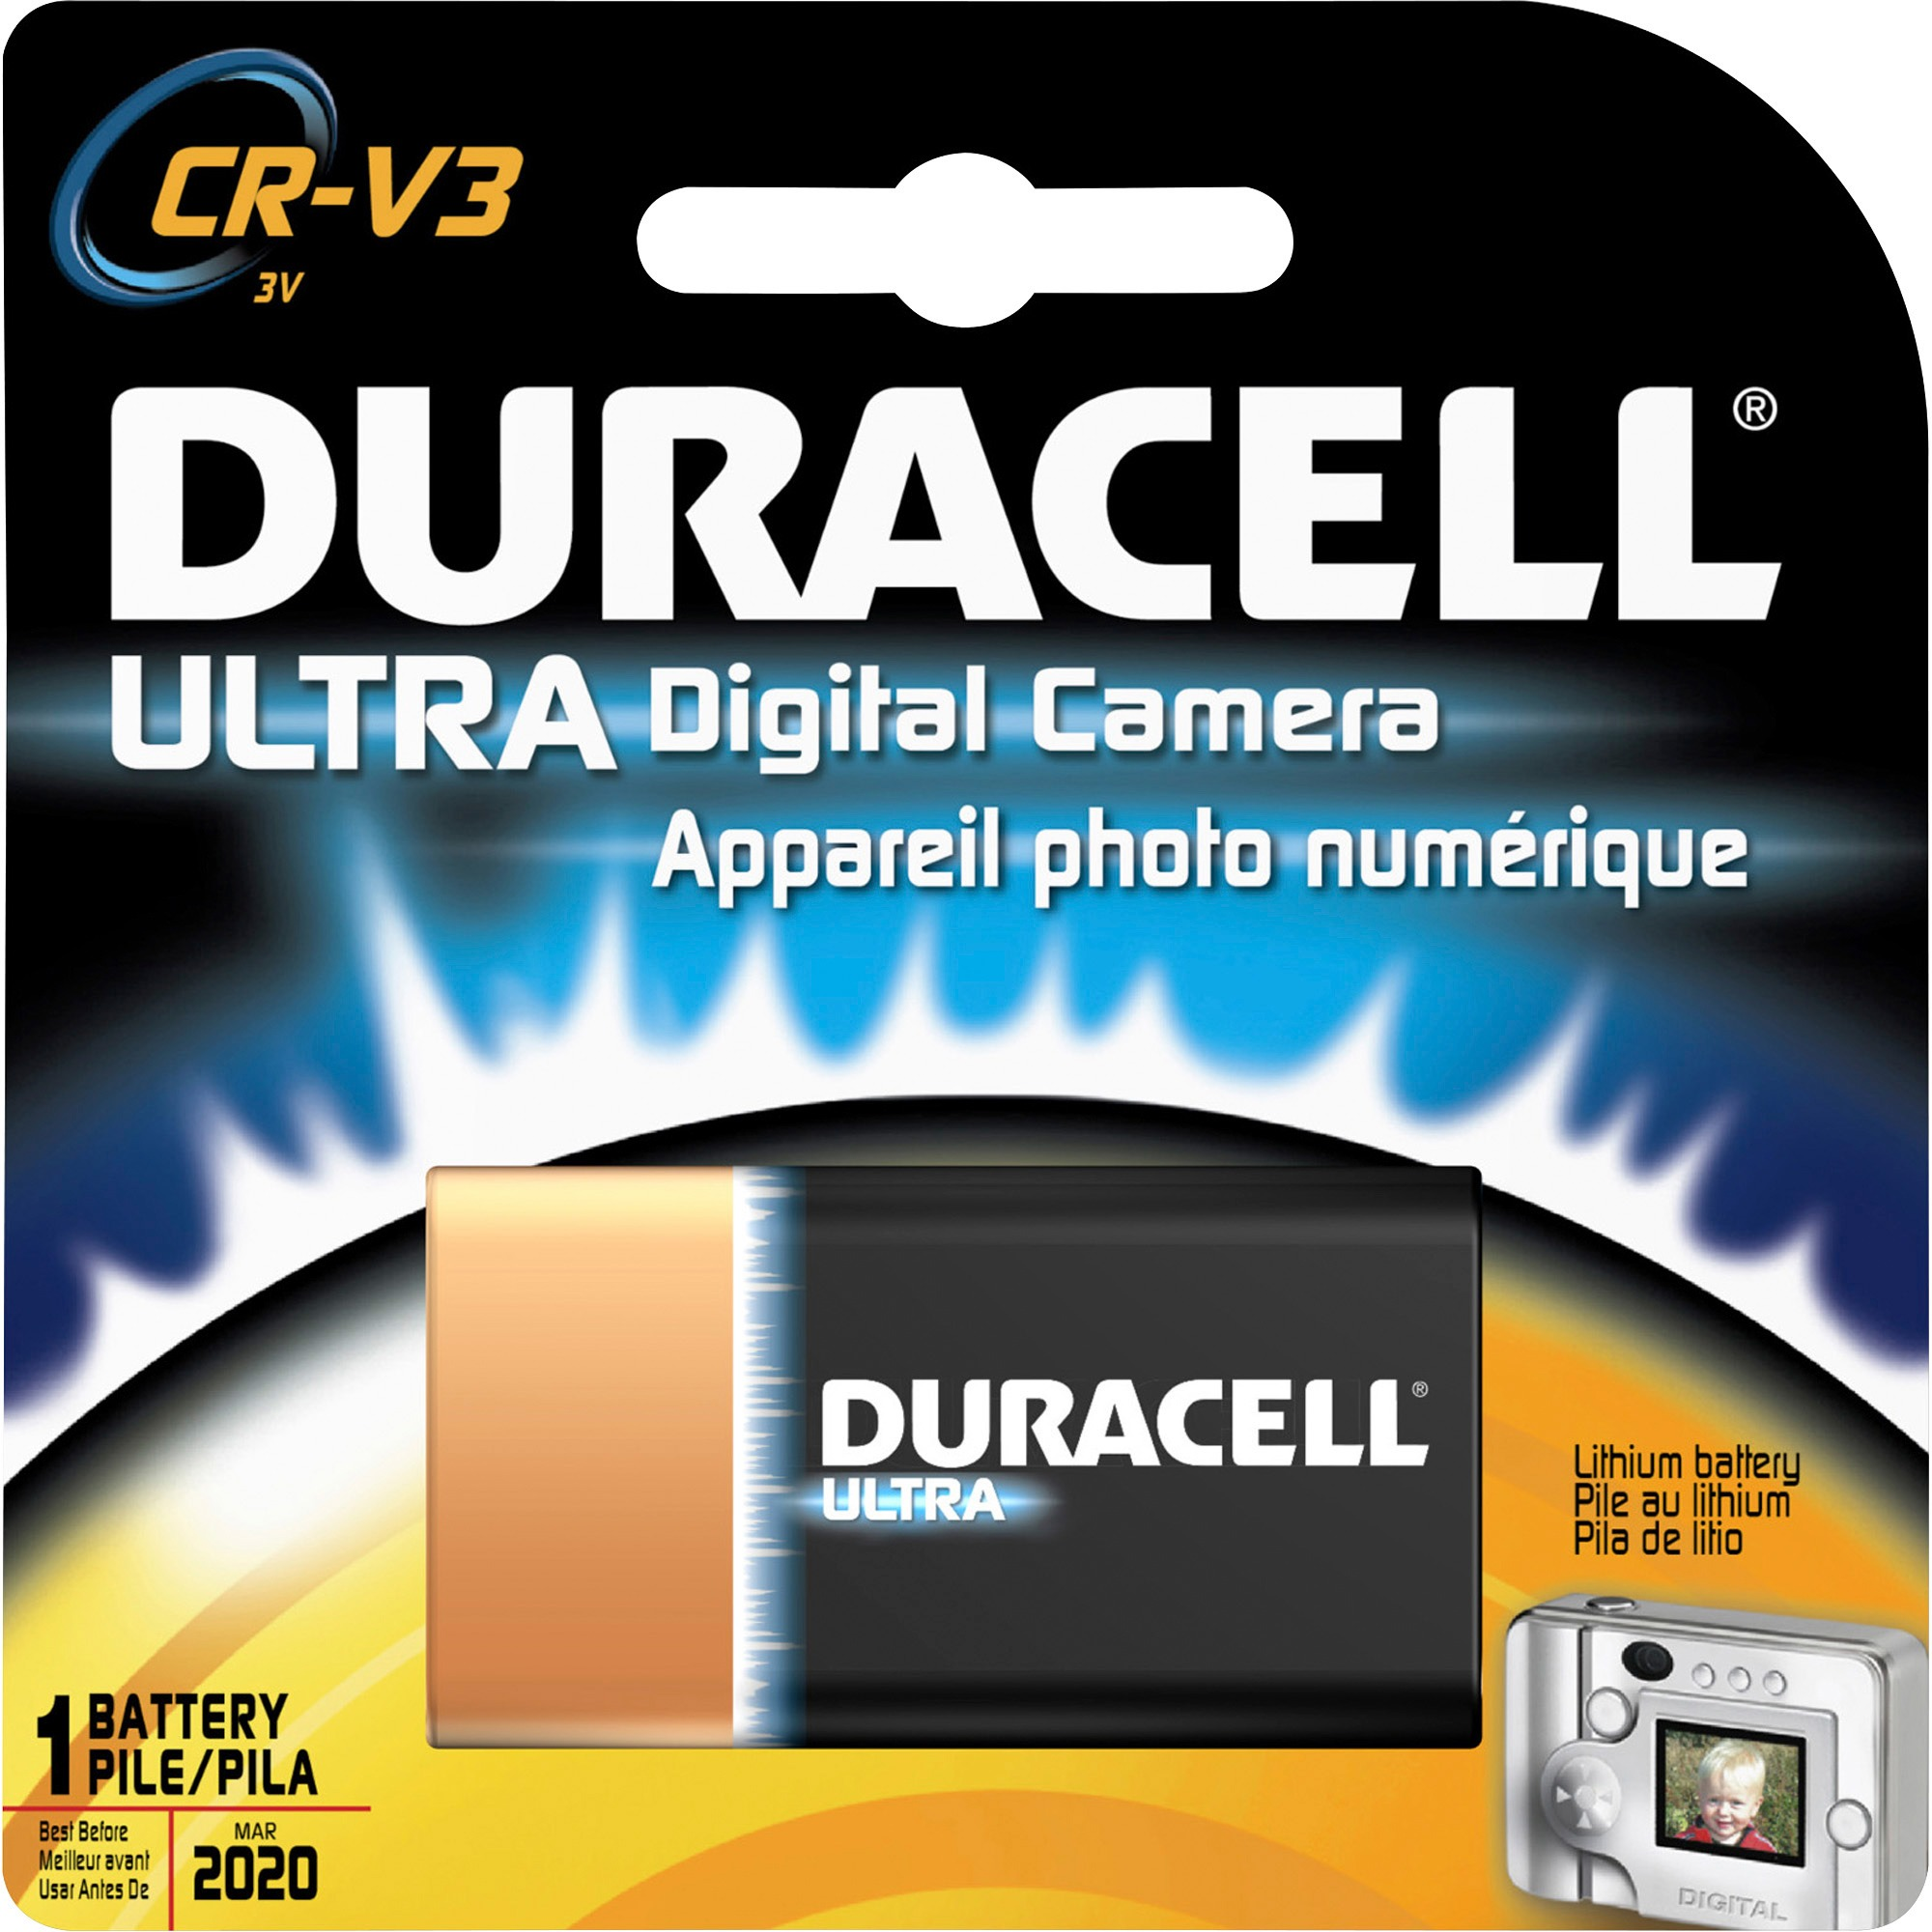 Duracell Lithium Digital Camera 3V Battery - DLCRV3, 1 Each (Quantity)